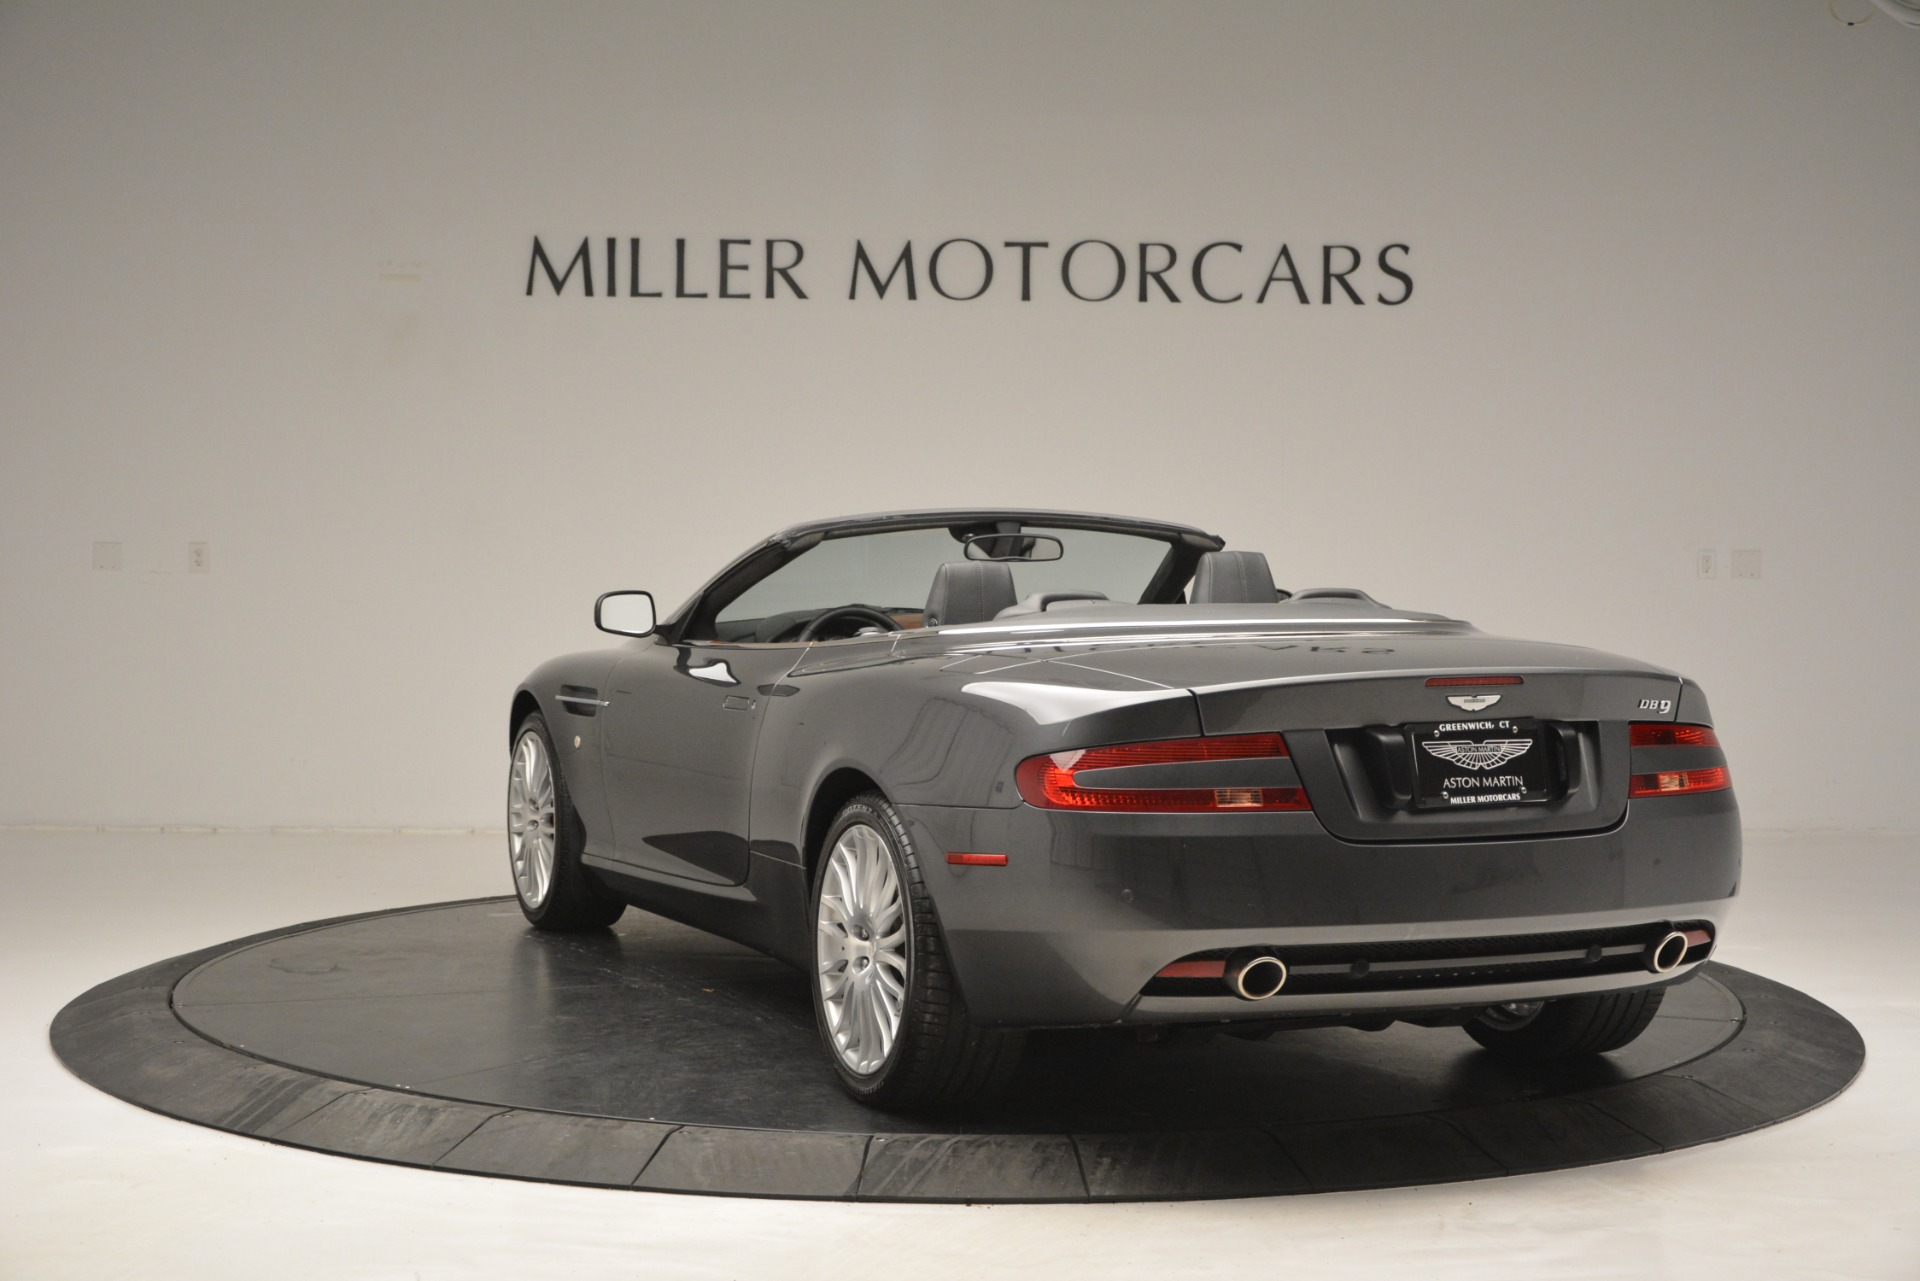 Used 2009 Aston Martin DB9 Convertible For Sale In Westport, CT 2930_p5